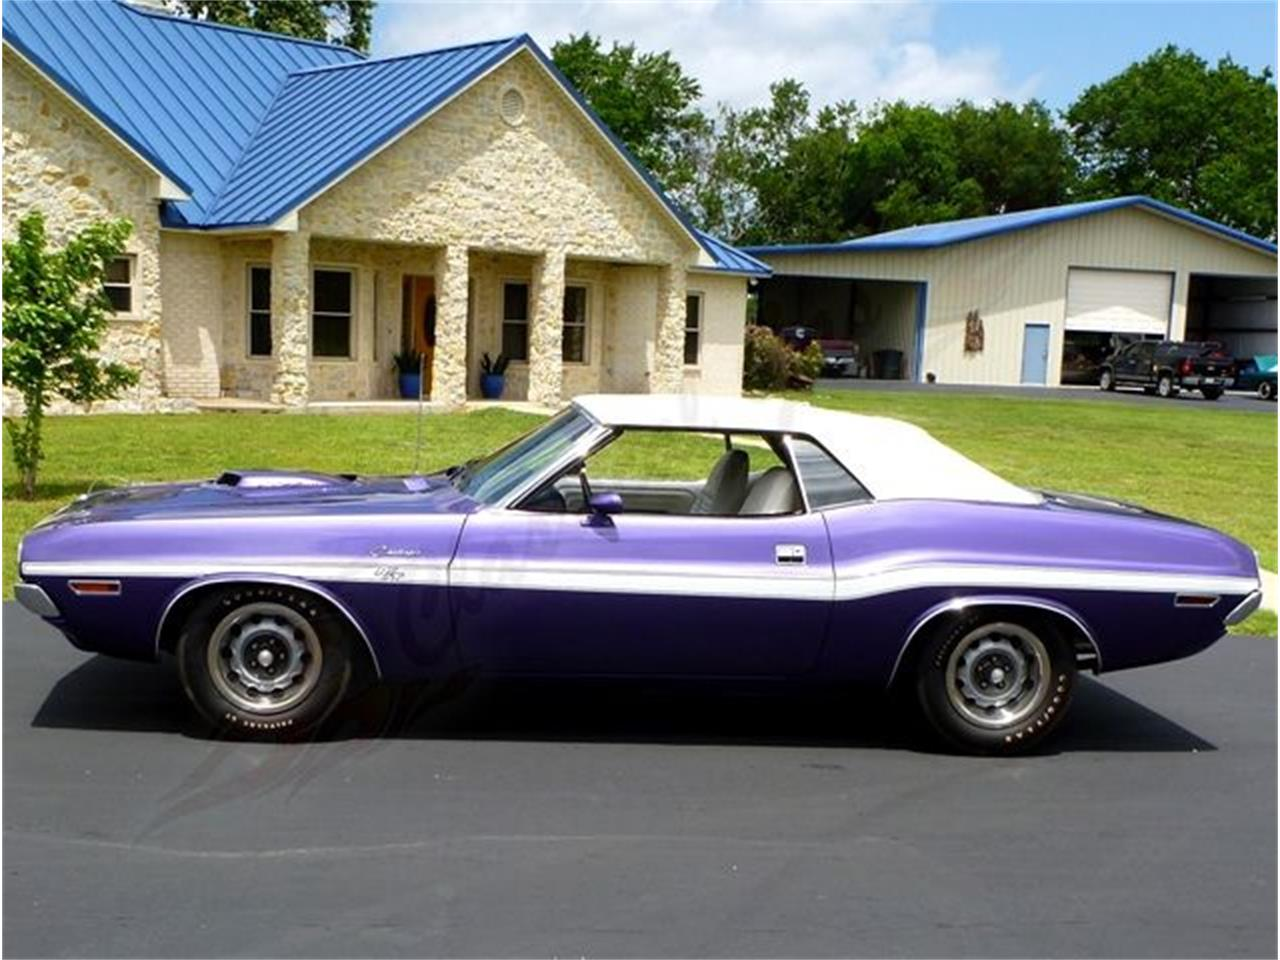 Large Picture of 1970 Dodge Challenger R/T - $149,500.00 - QKBE